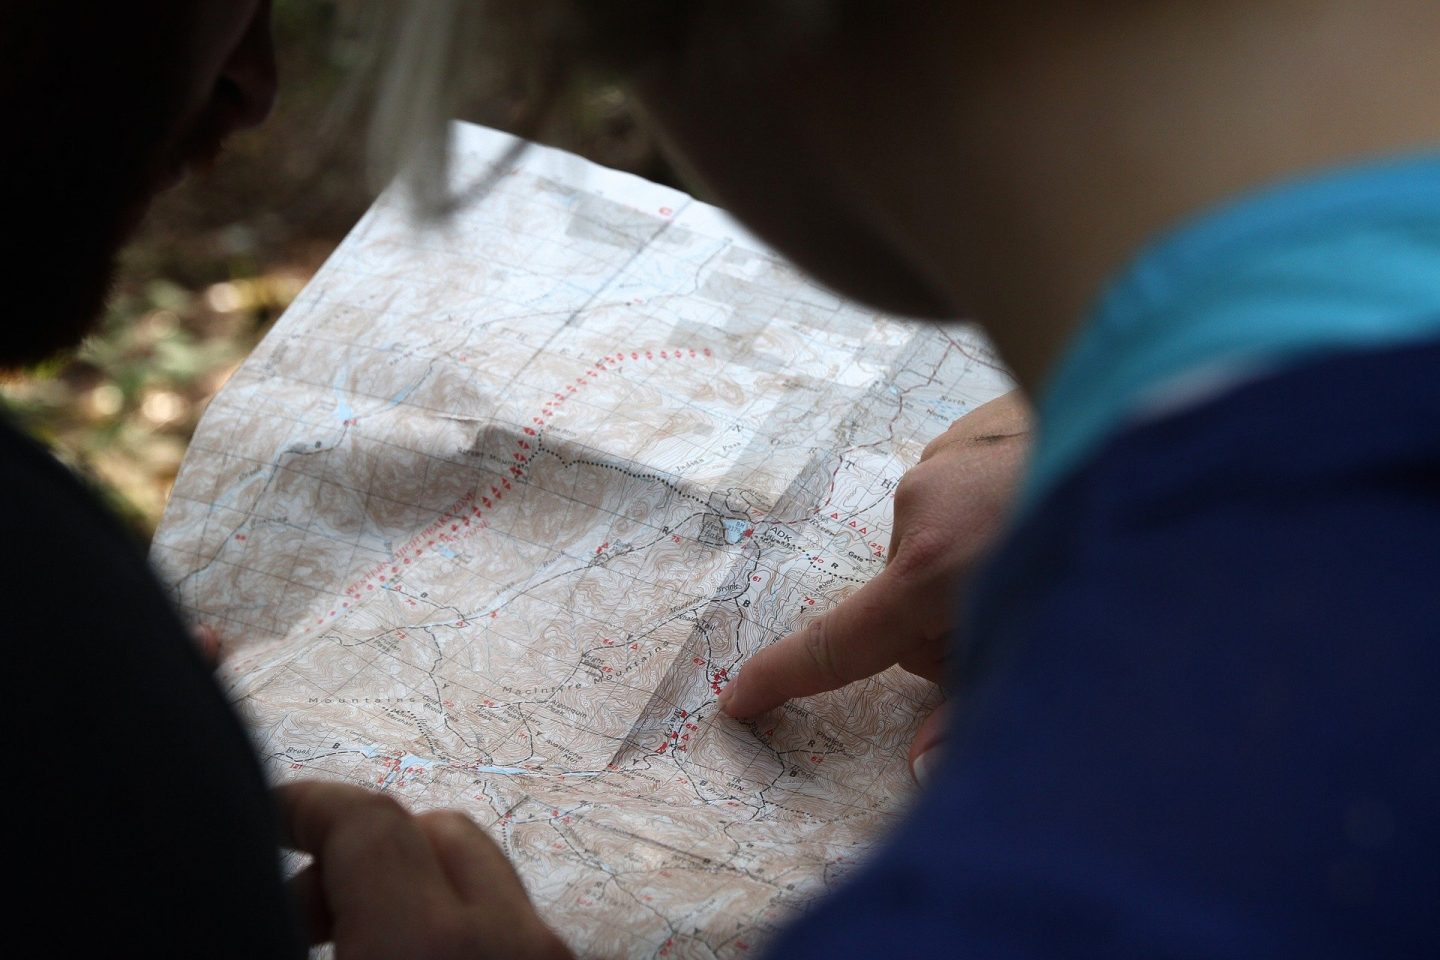 A paper map with 2 people looking at it, and one pointing at a spot with their finger